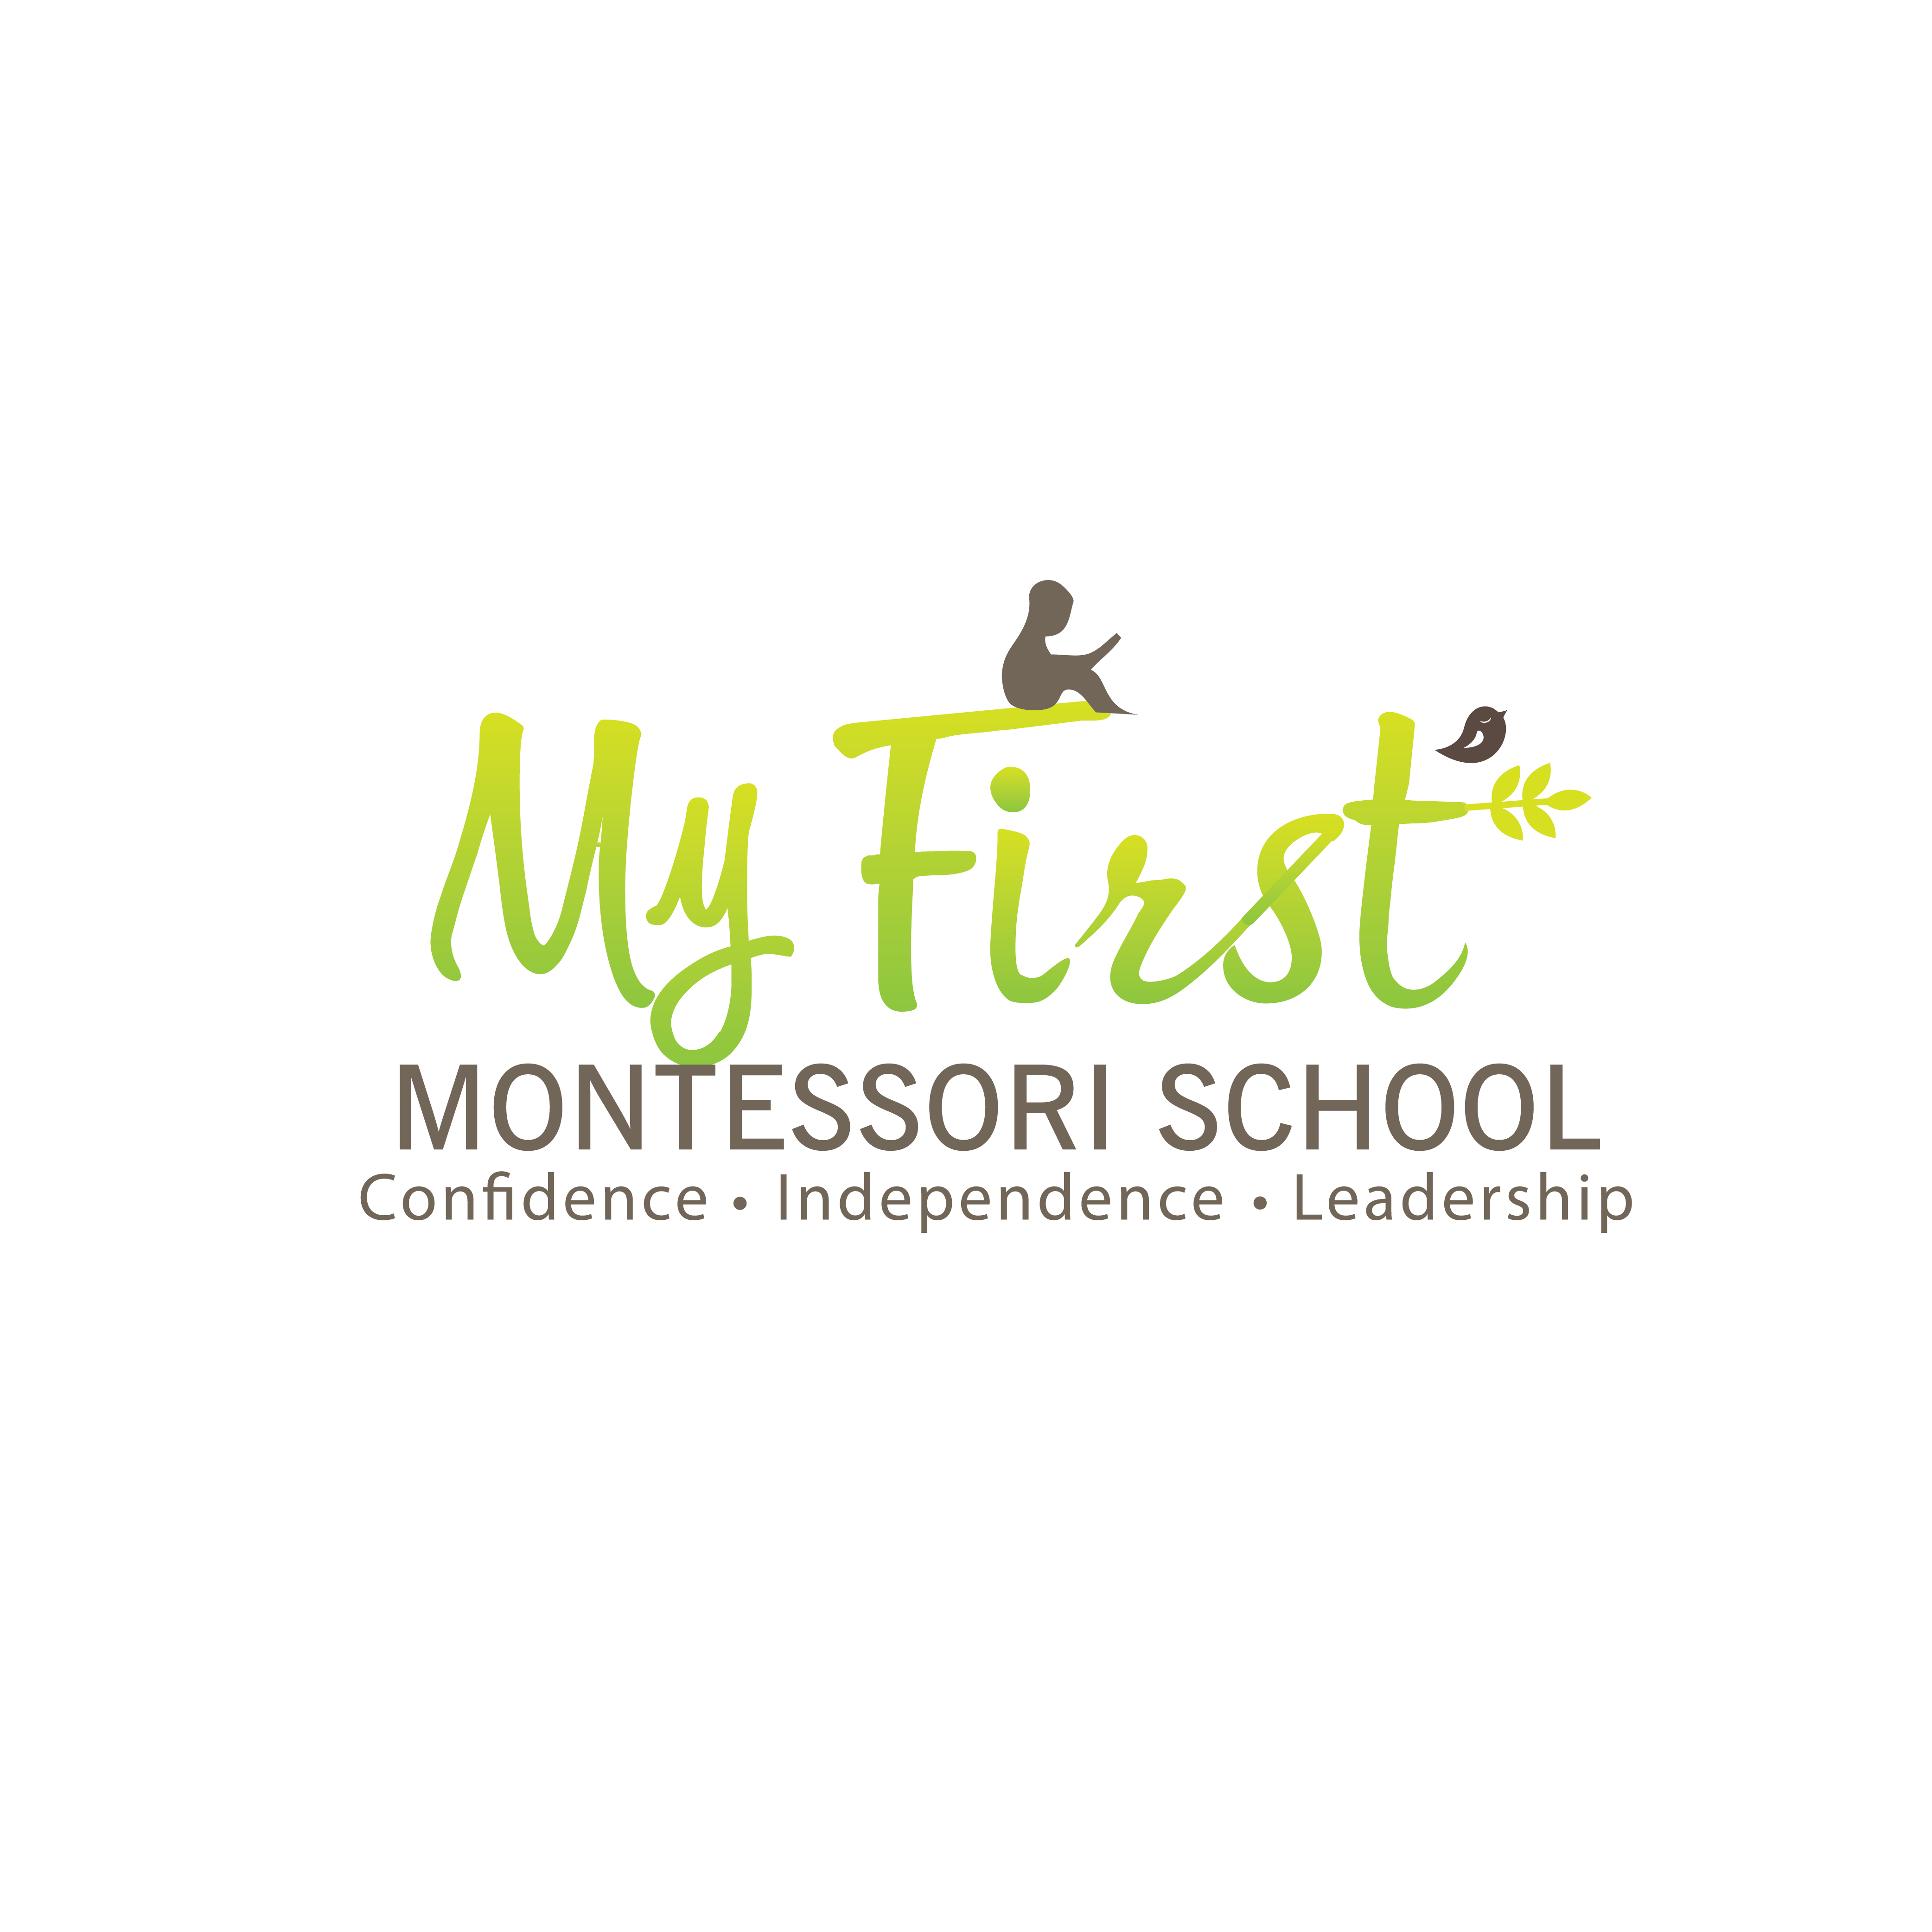 Create an attractive logo design for an early years montessori school